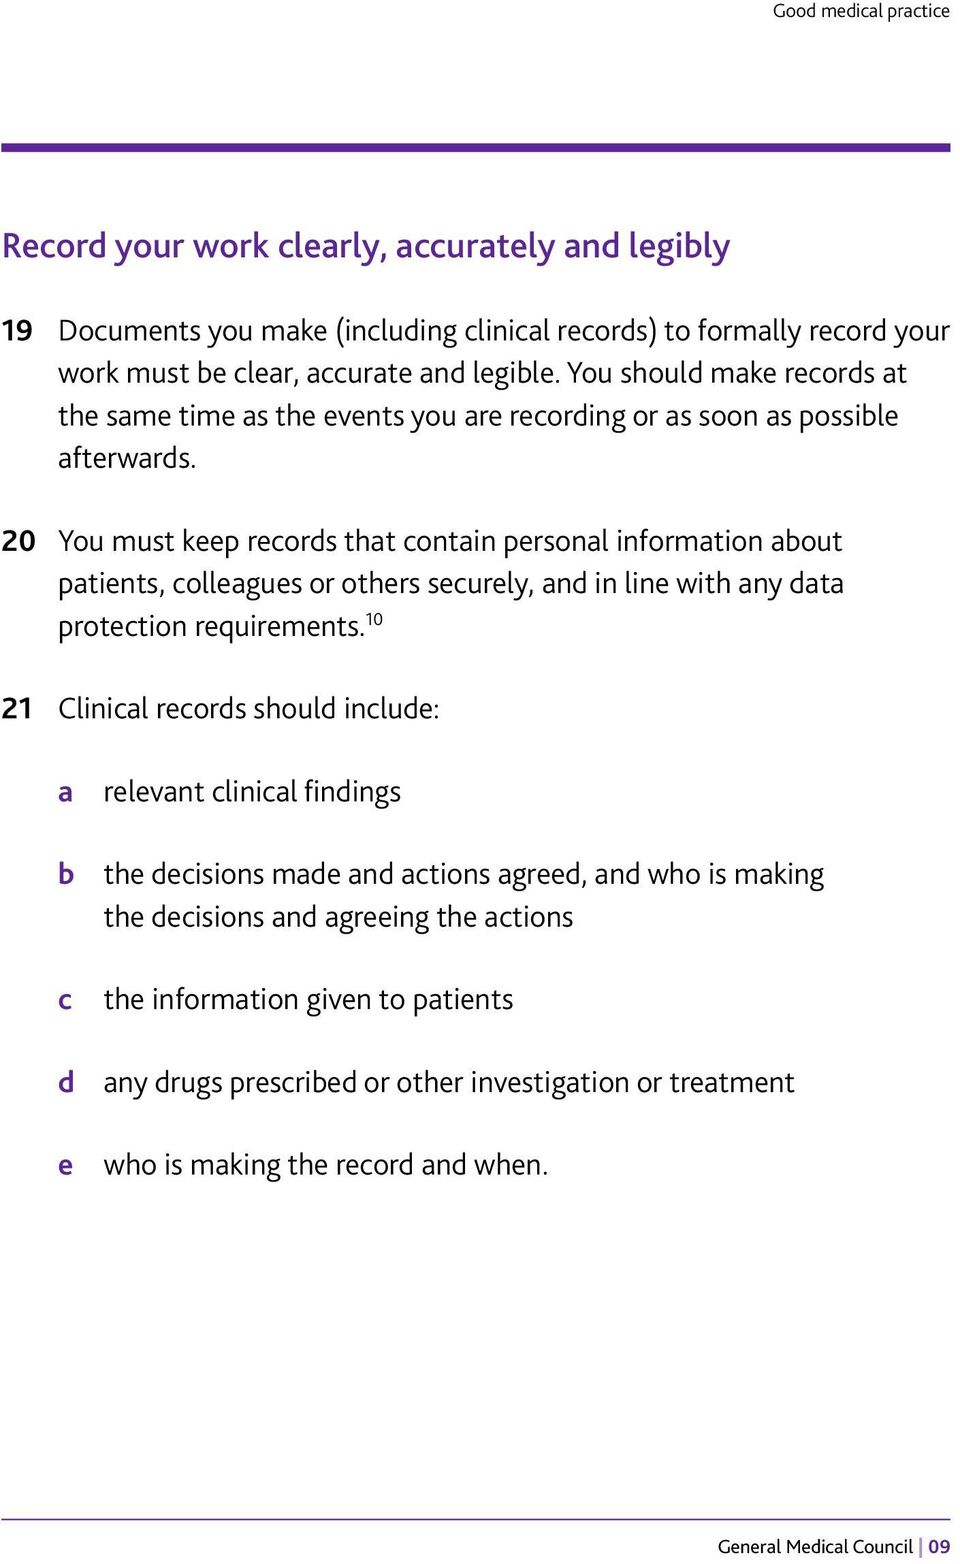 20 You must keep records that contain personal information about patients, colleagues or others securely, and in line with any data protection requirements.